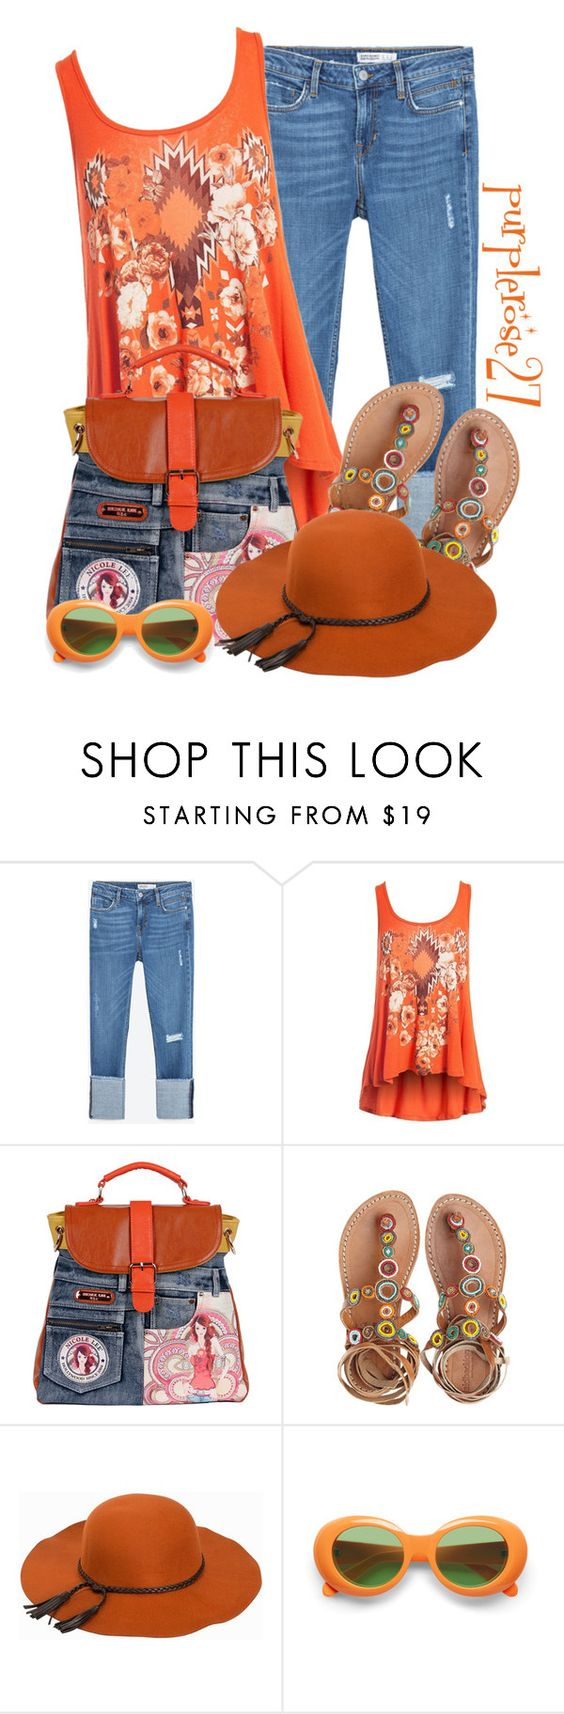 """DENIM BAG"" by purplerose27 ❤ liked on Polyvore featuring Zara, Sans Souci, Nicole Lee, Laidback London and Vero Moda"